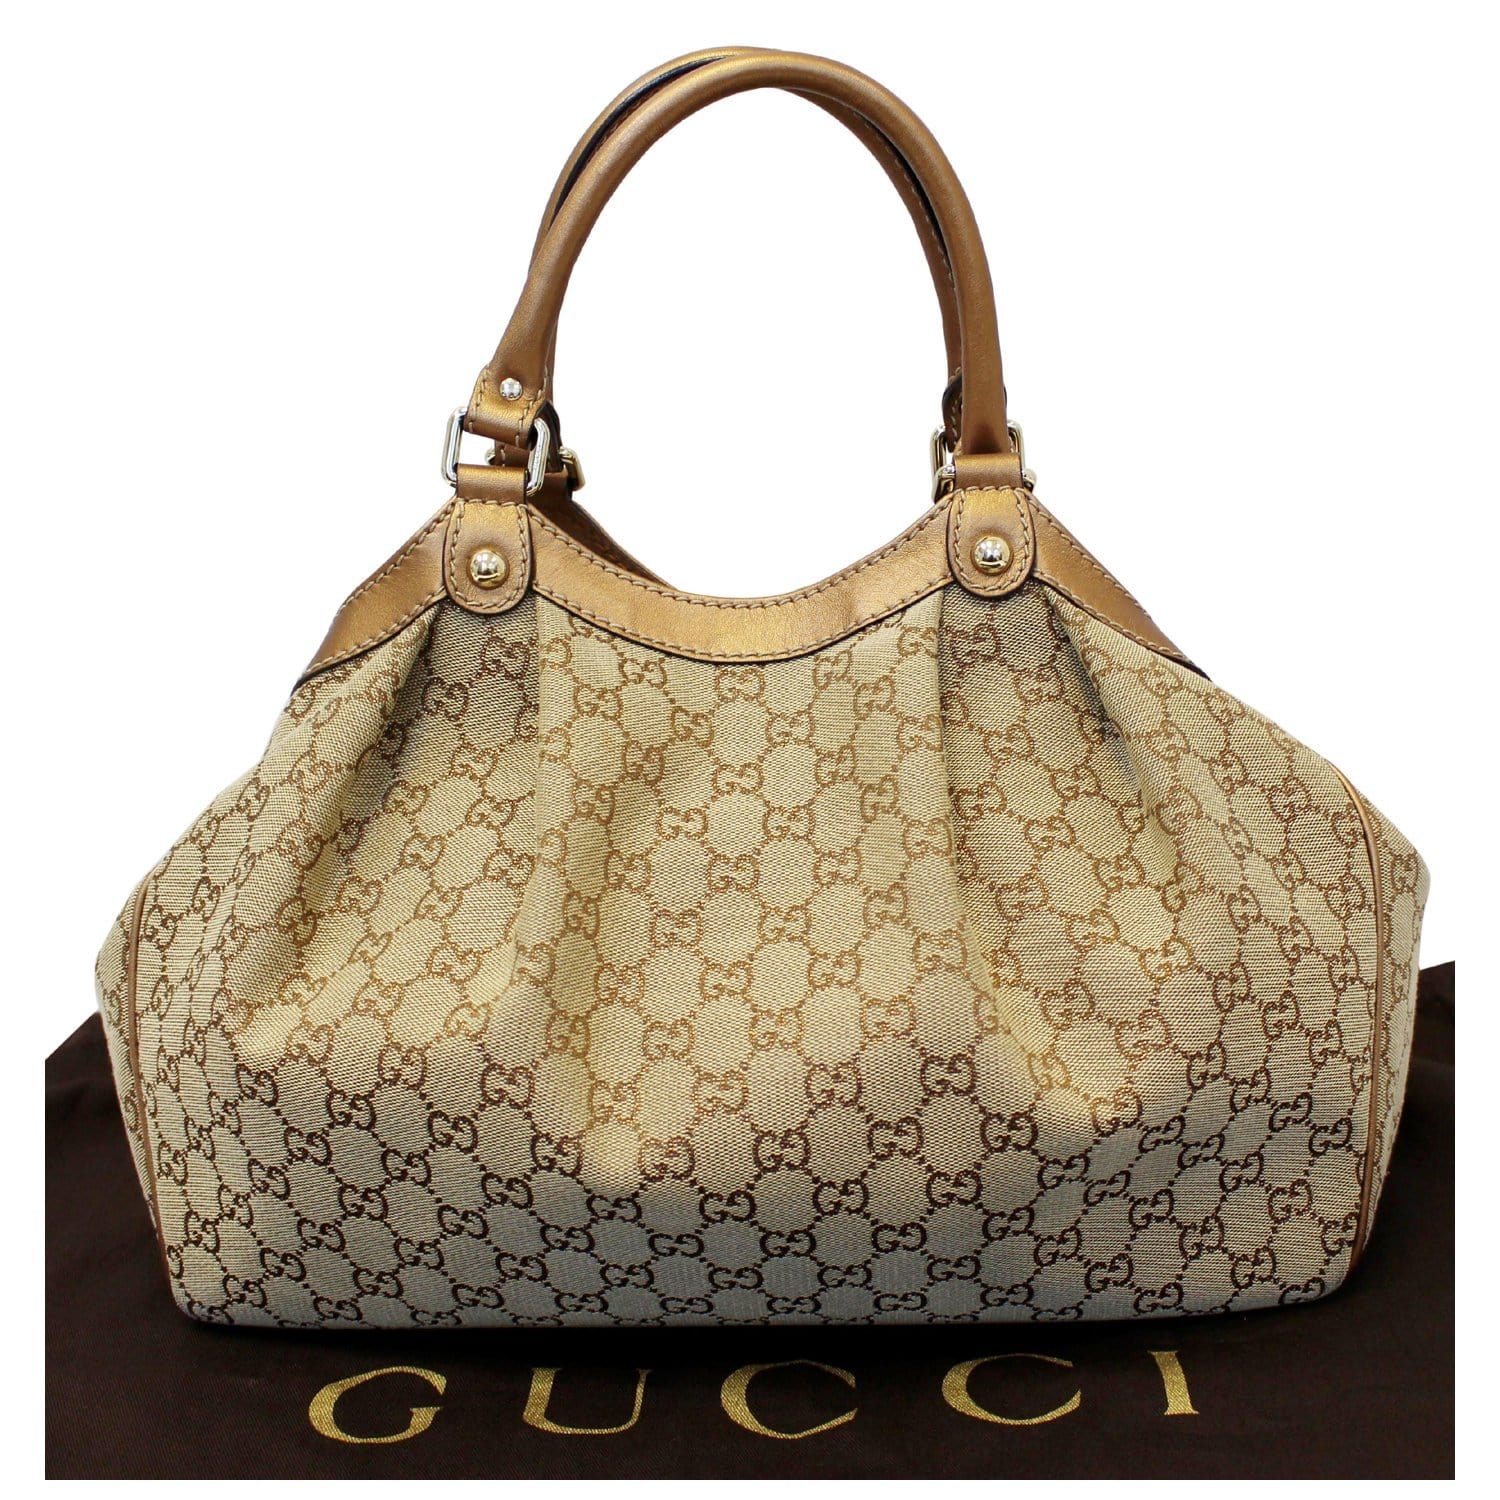 6b30d23fb8ed GUCCI GG Canvas Medium Sukey Tote Bag 211944-US